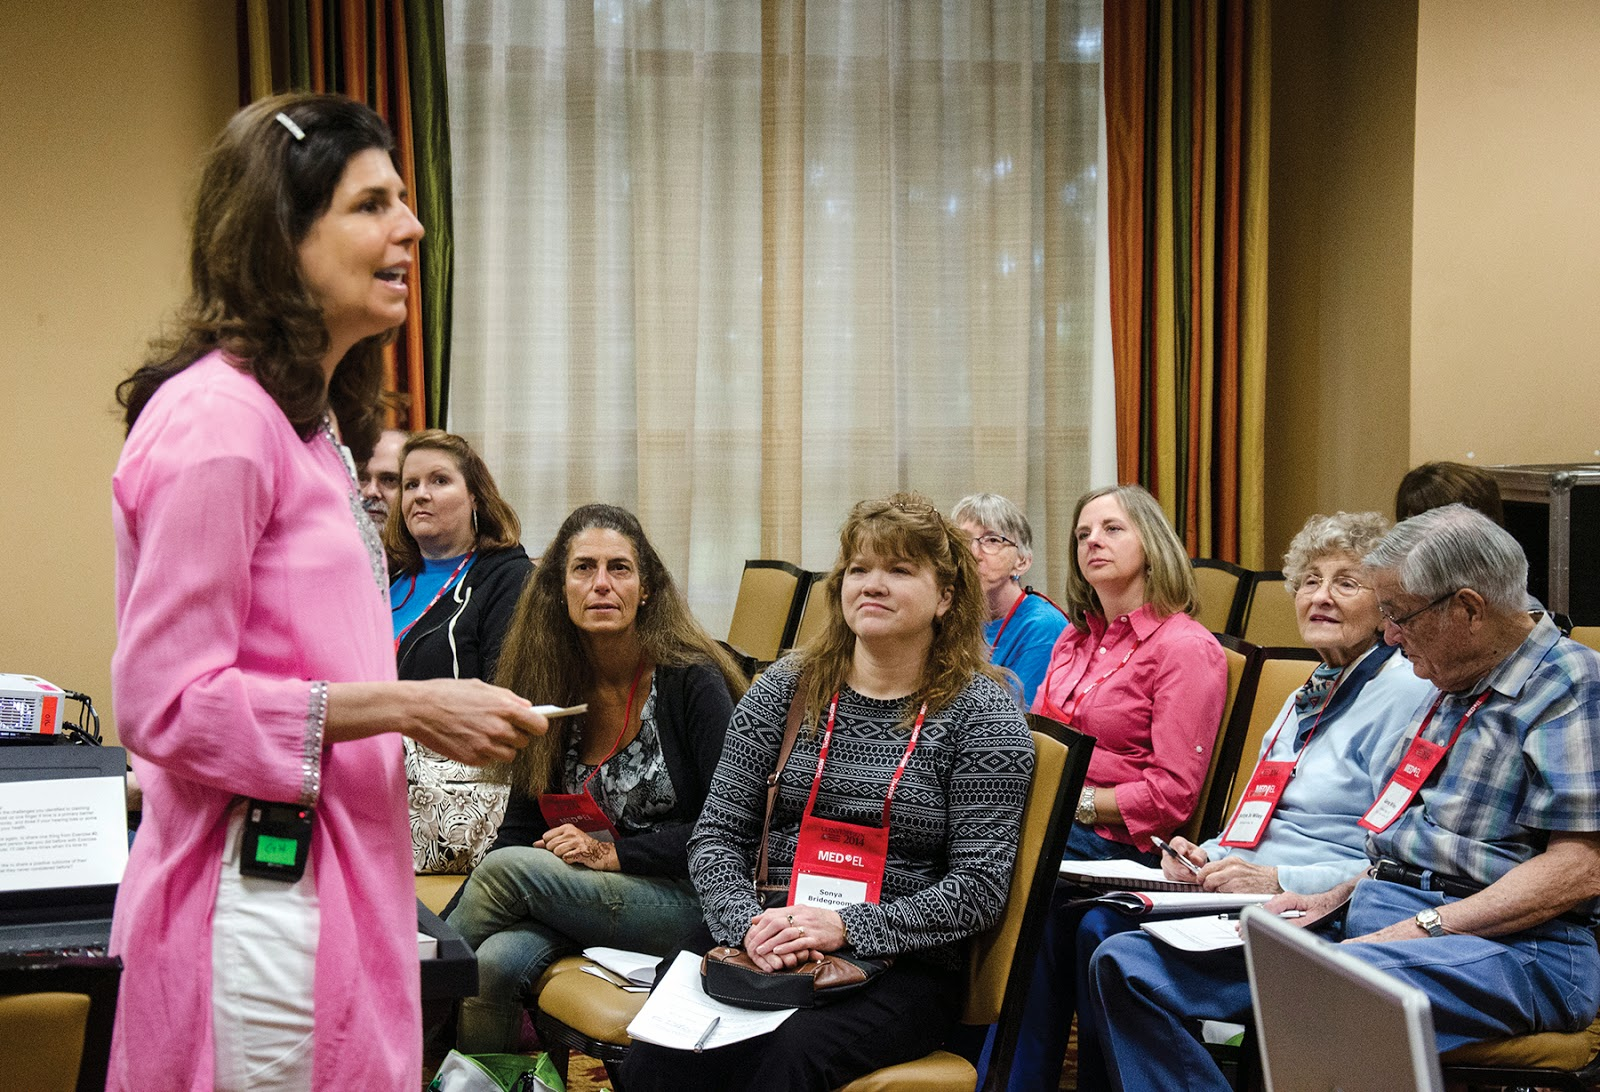 Nancy M. Williams speaking to a room of workshop participants on living with a hearing loss while pursuing her passion as an amateur pianist